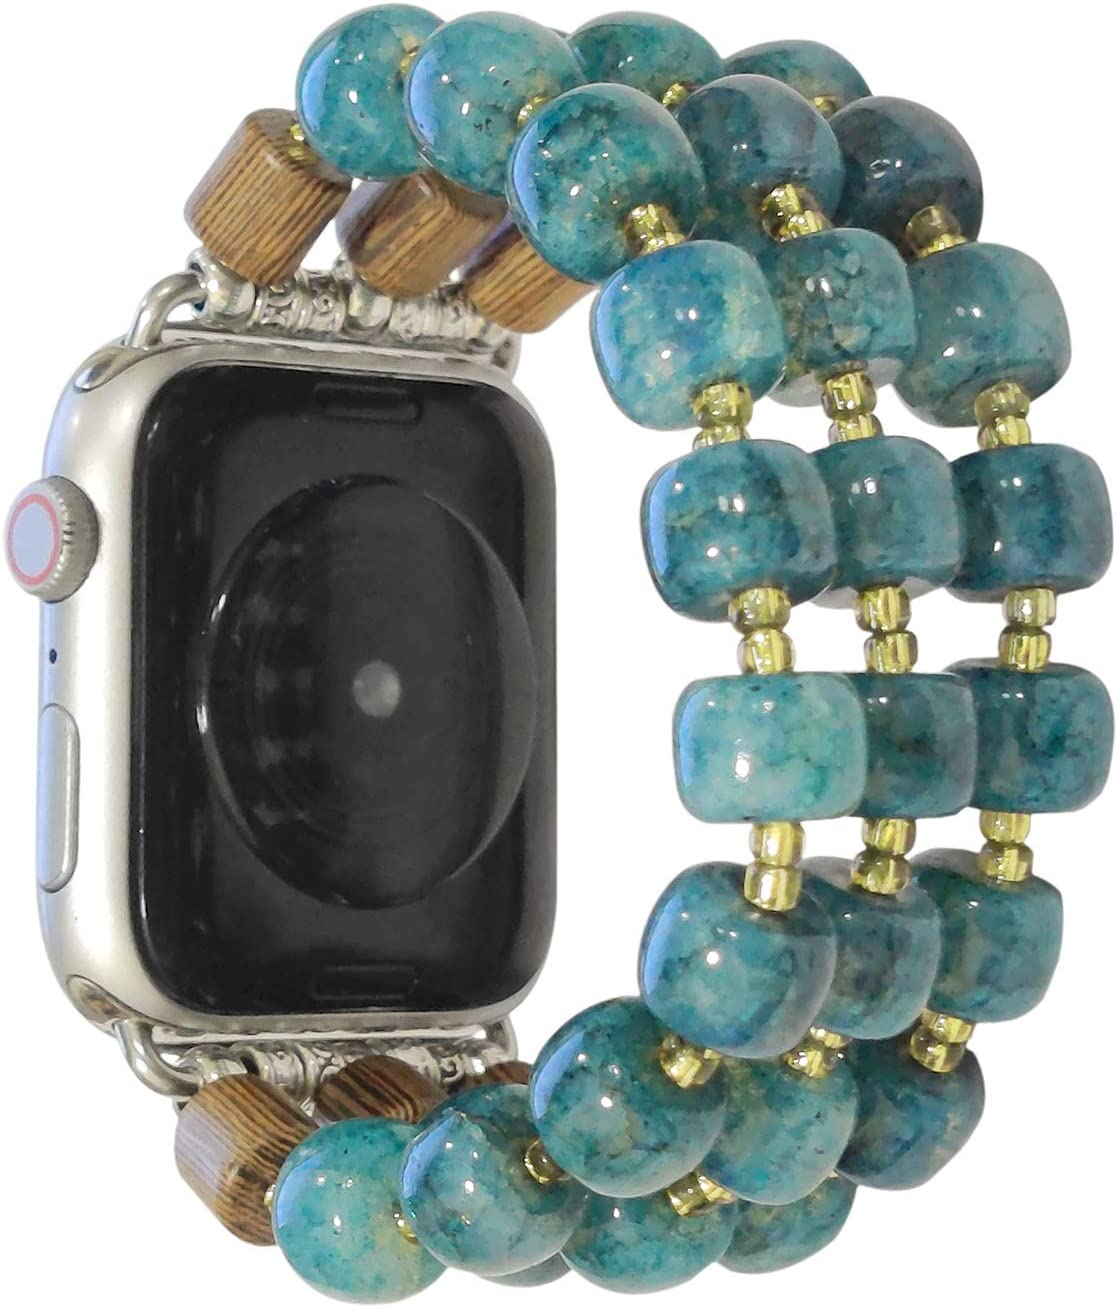 ZOOZOOT Smartwatch Band Compatiable for Apple Watch Band 38mm 40mm 42mm 44mm, Crystal and Wooden Beads Band for Series 6/5/4/3/2/1